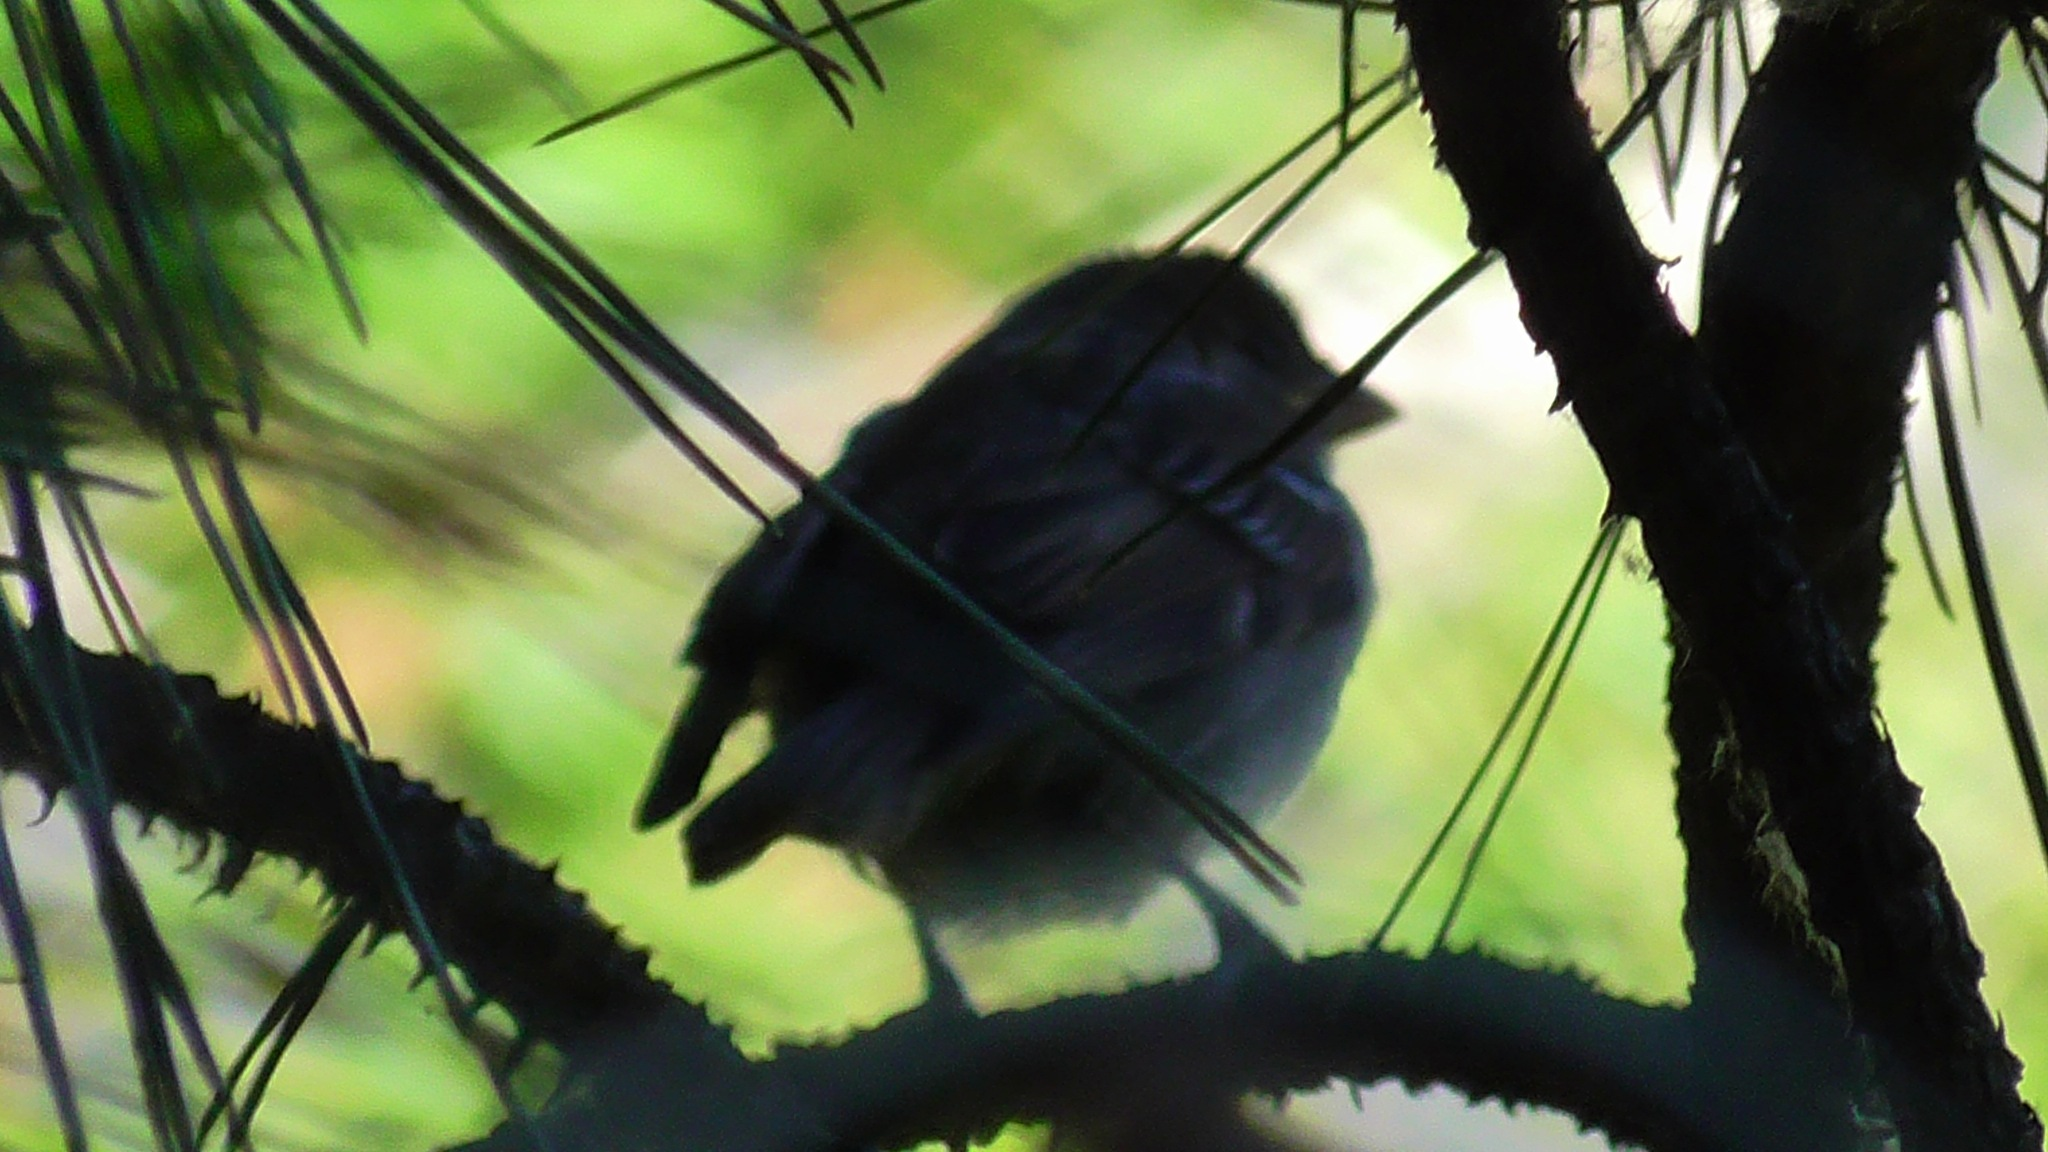 Sparrow silhouette by evakalocsay